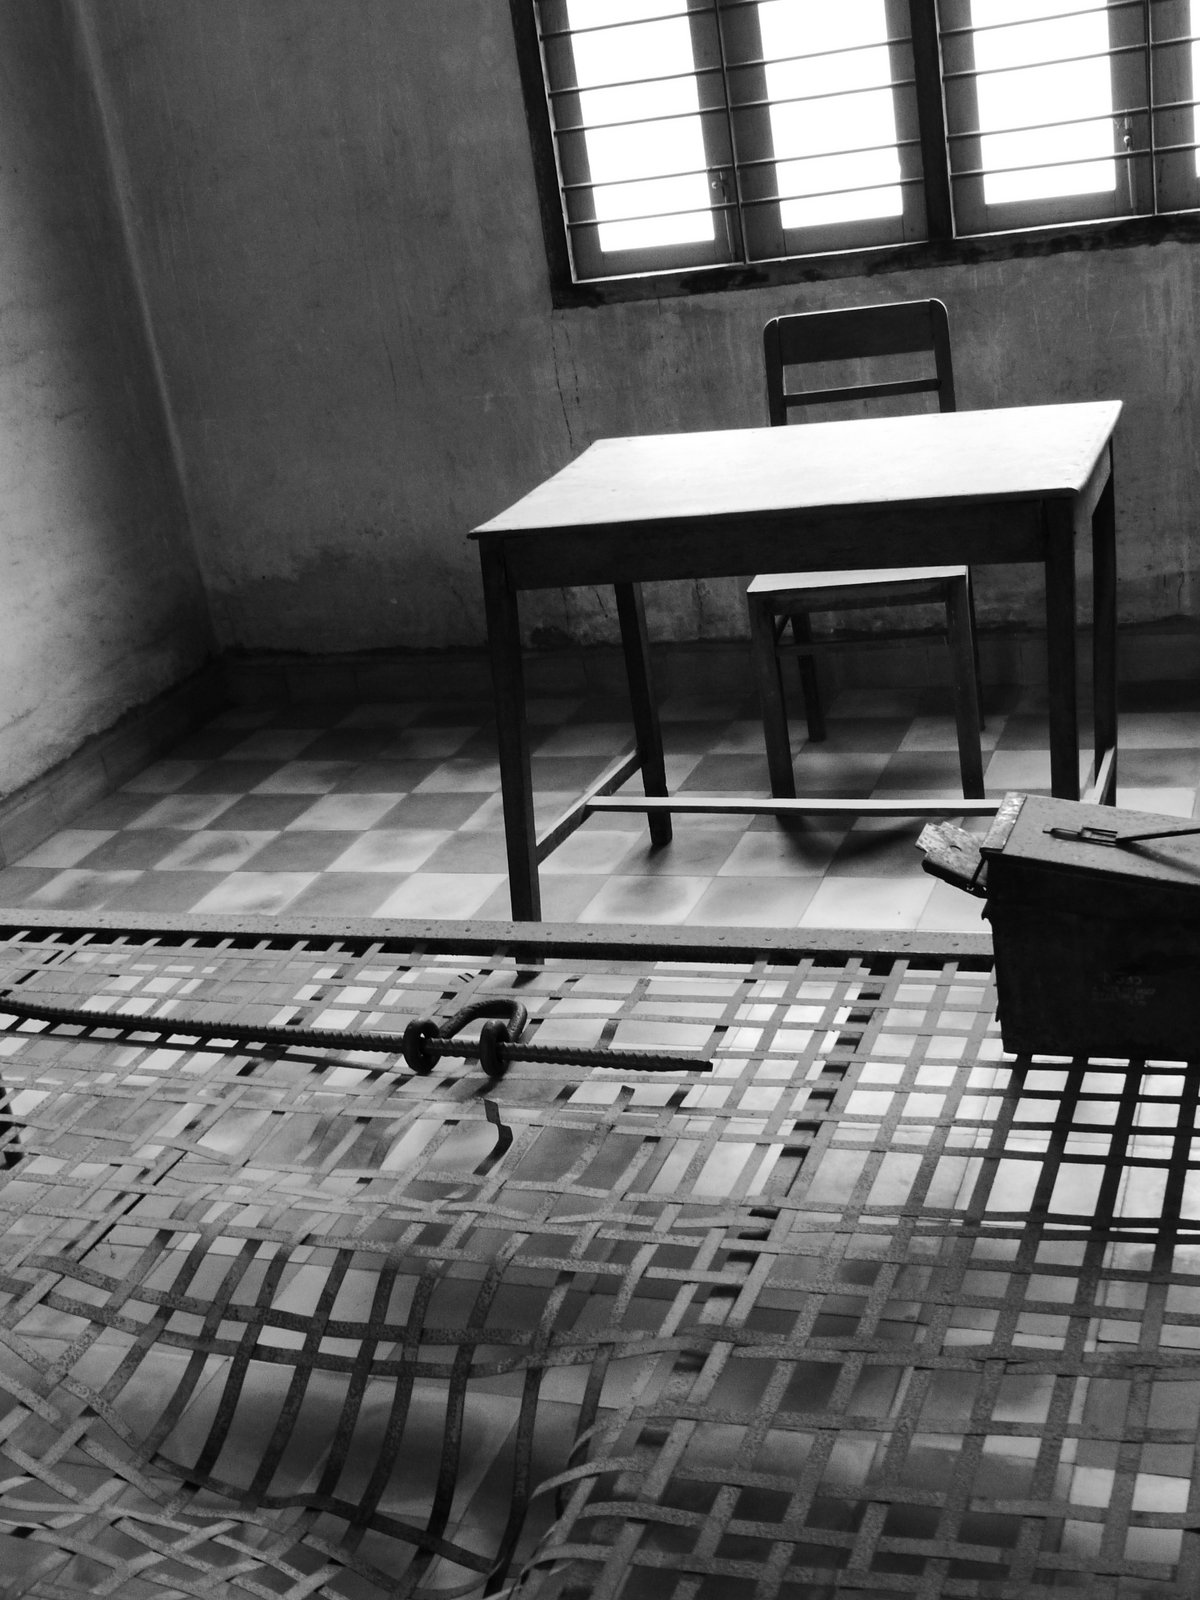 One of the interrogation rooms at Tuol Sleng (S-21) prison. In these rooms, victims were brutally tortured until they confessed to whatever their interrogators wanted them to confess to.